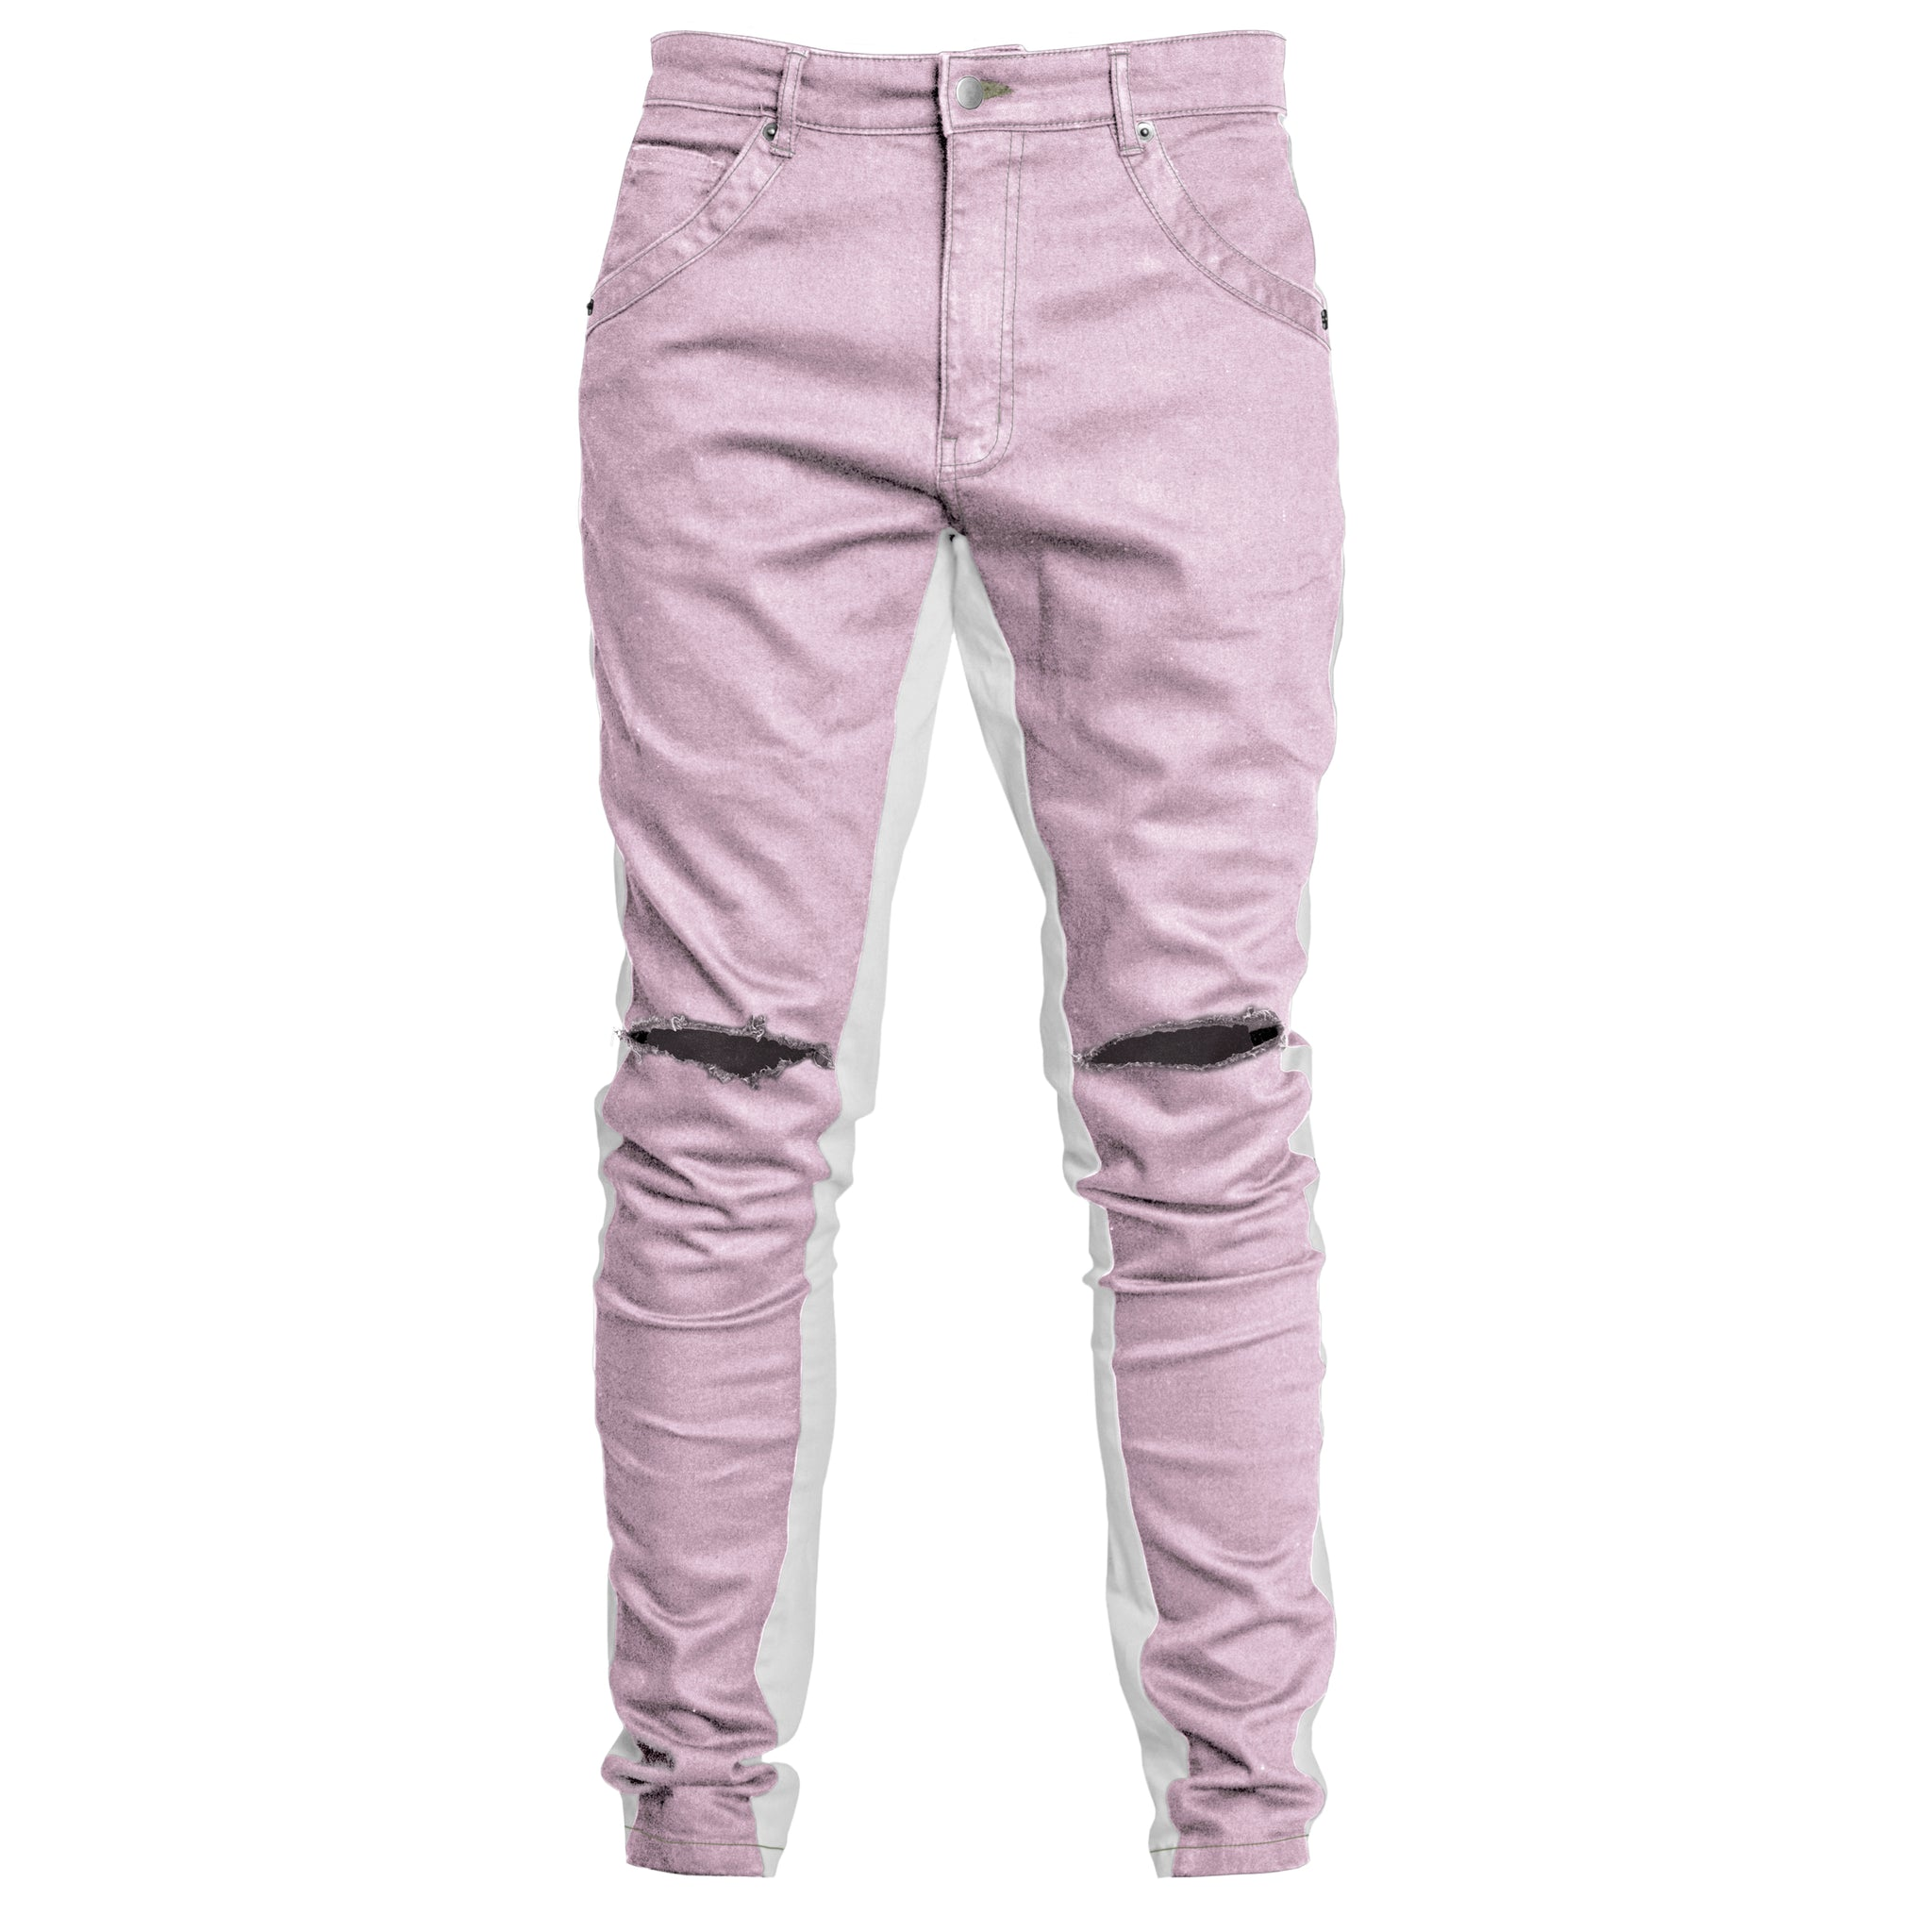 Track Jeans : Light Ochra/White